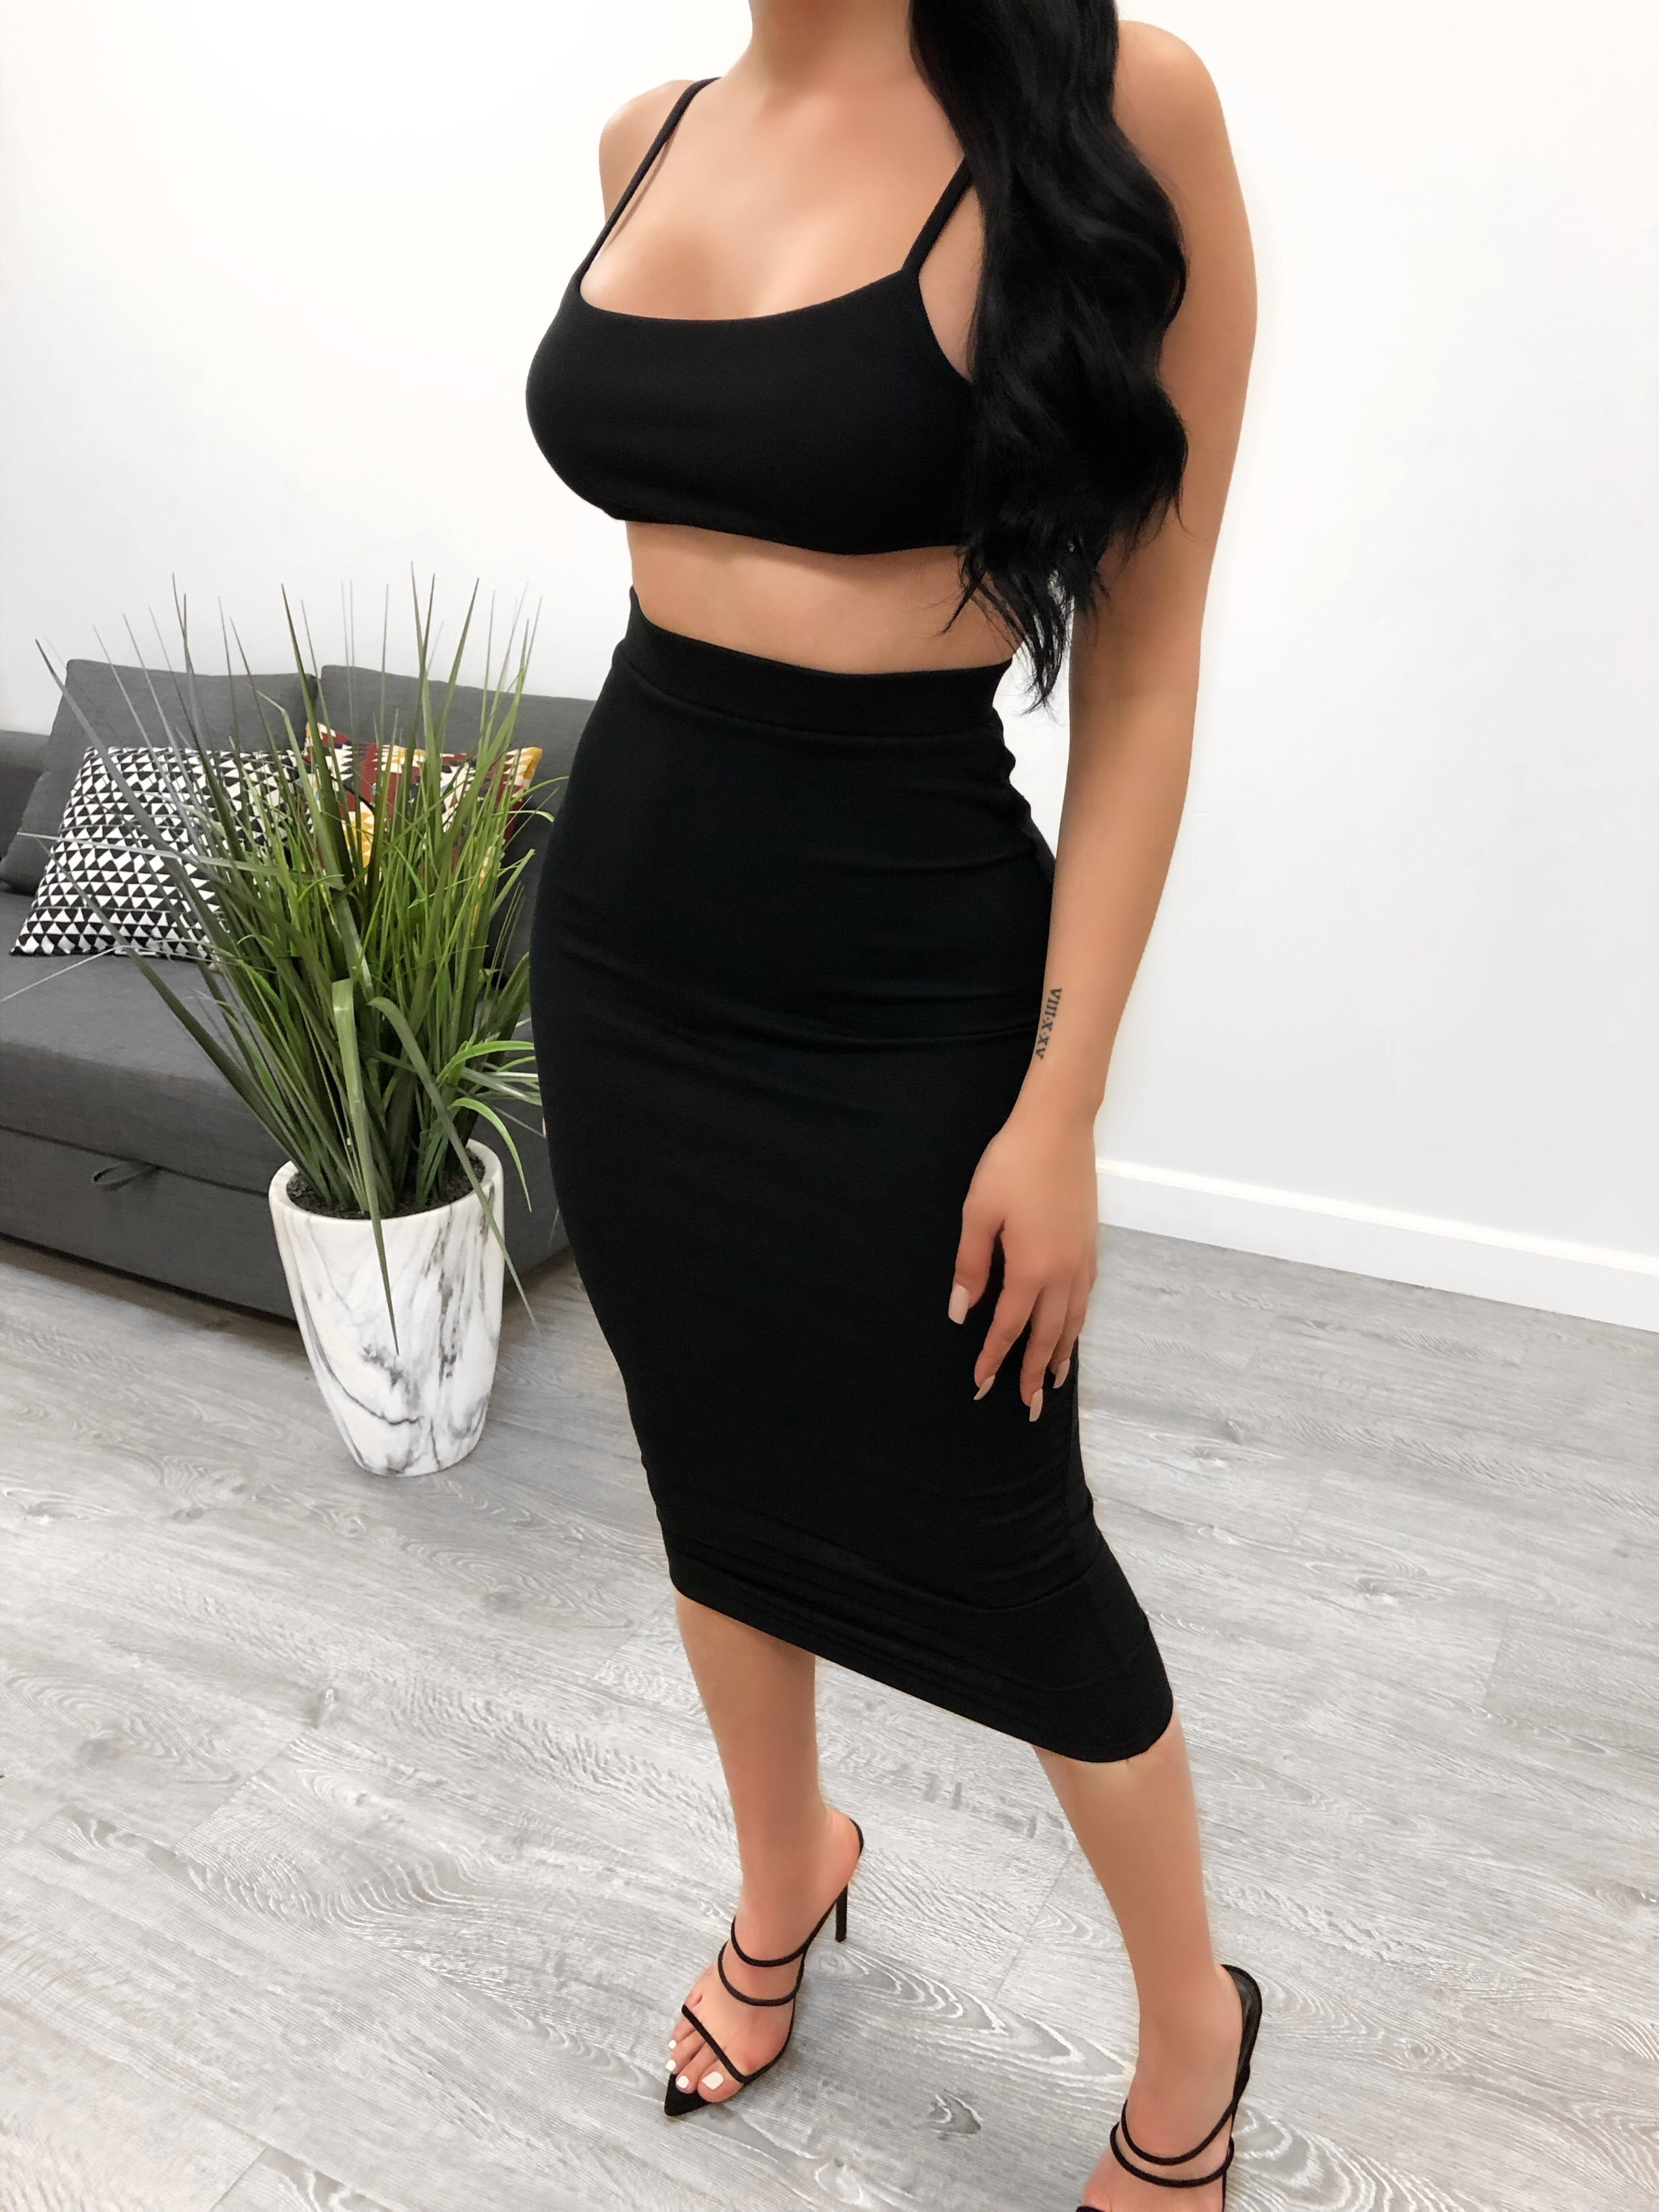 black two piece set. backless top. non adjustable strap on back for support. high waisted skirt. skirt is below the knee length.